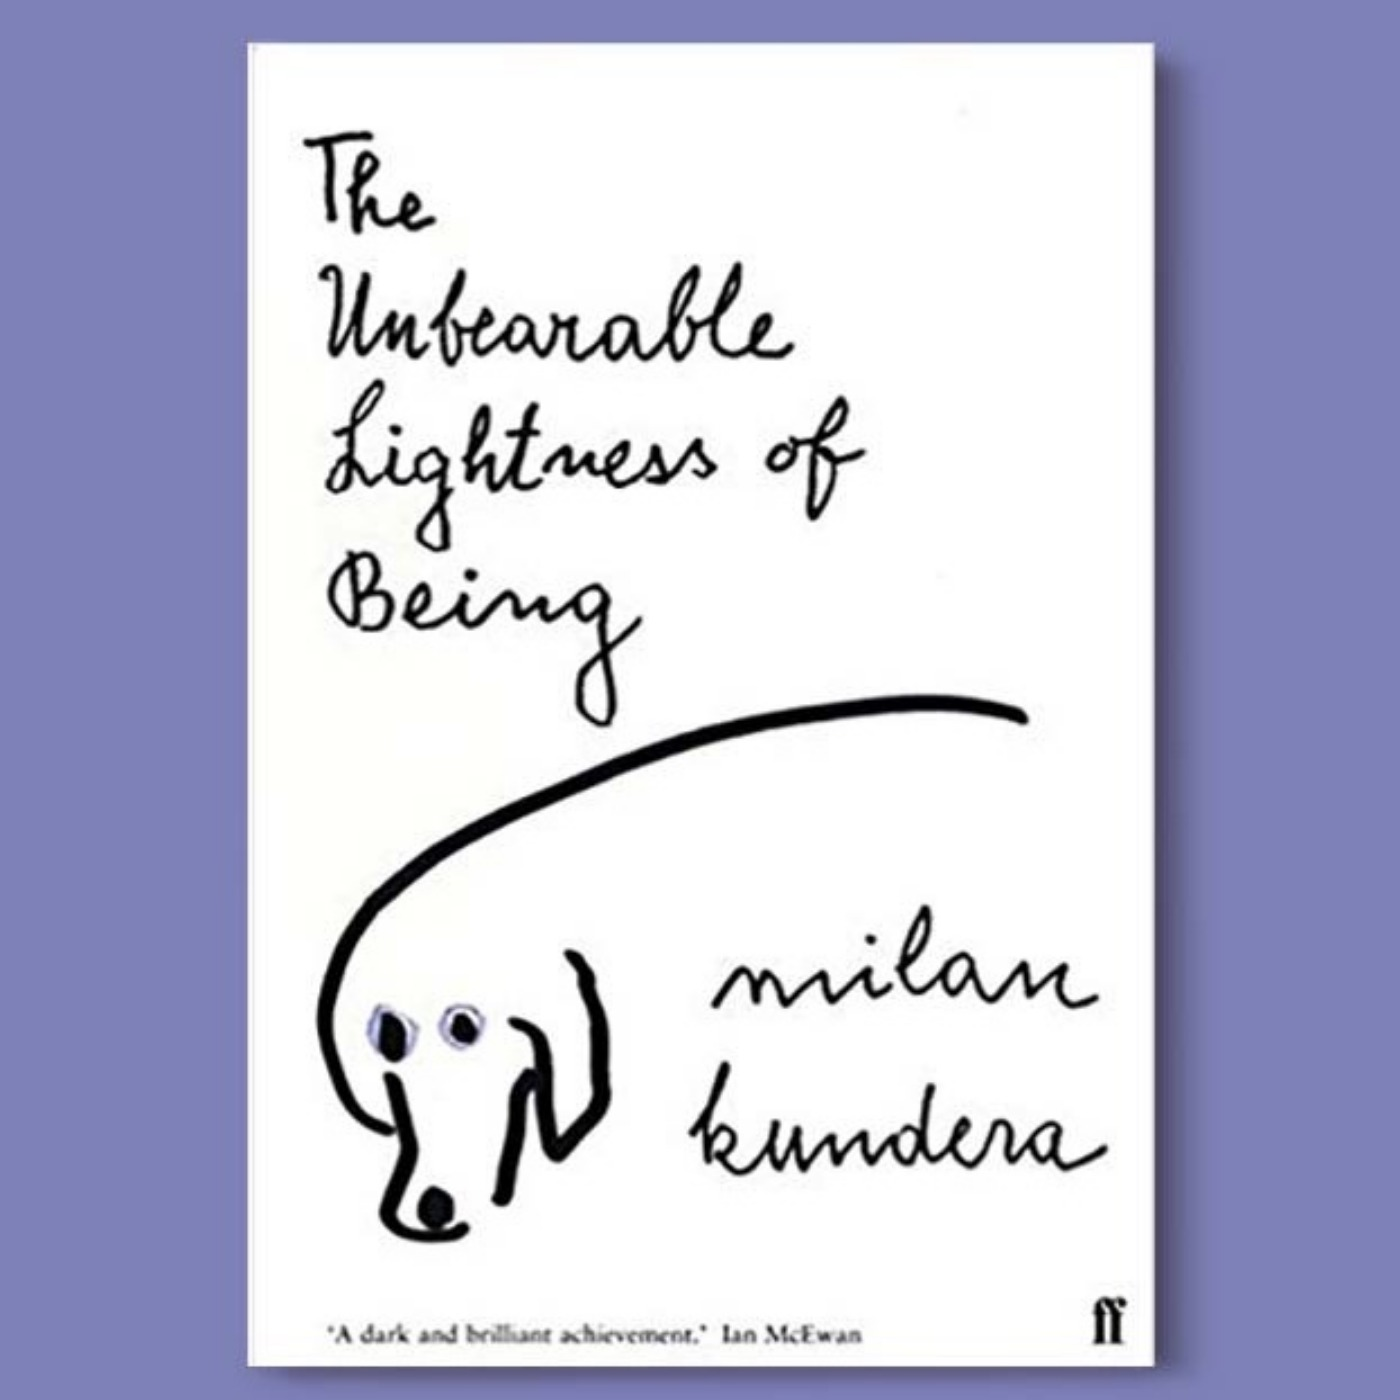 390 - The Unbearable Lightness Of Being - O livro que a Alexia está lendo 💁